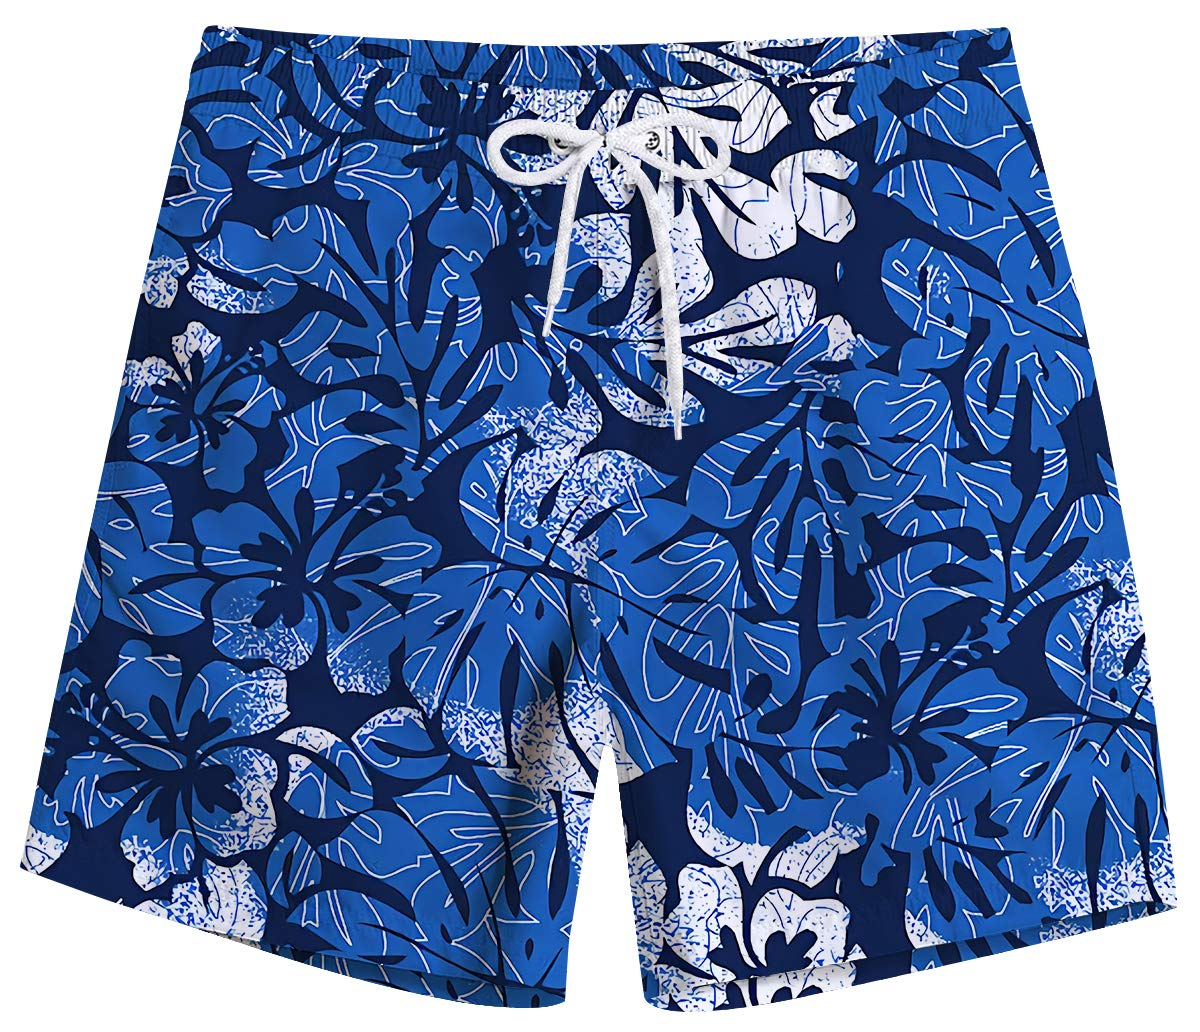 UNICOMIDEA Mens Swimsuits 80s Swim Trunks Blue Floral Printed Swim Board Shorts Slim Fit Quick Dry Board Shorts with Mesh Lining